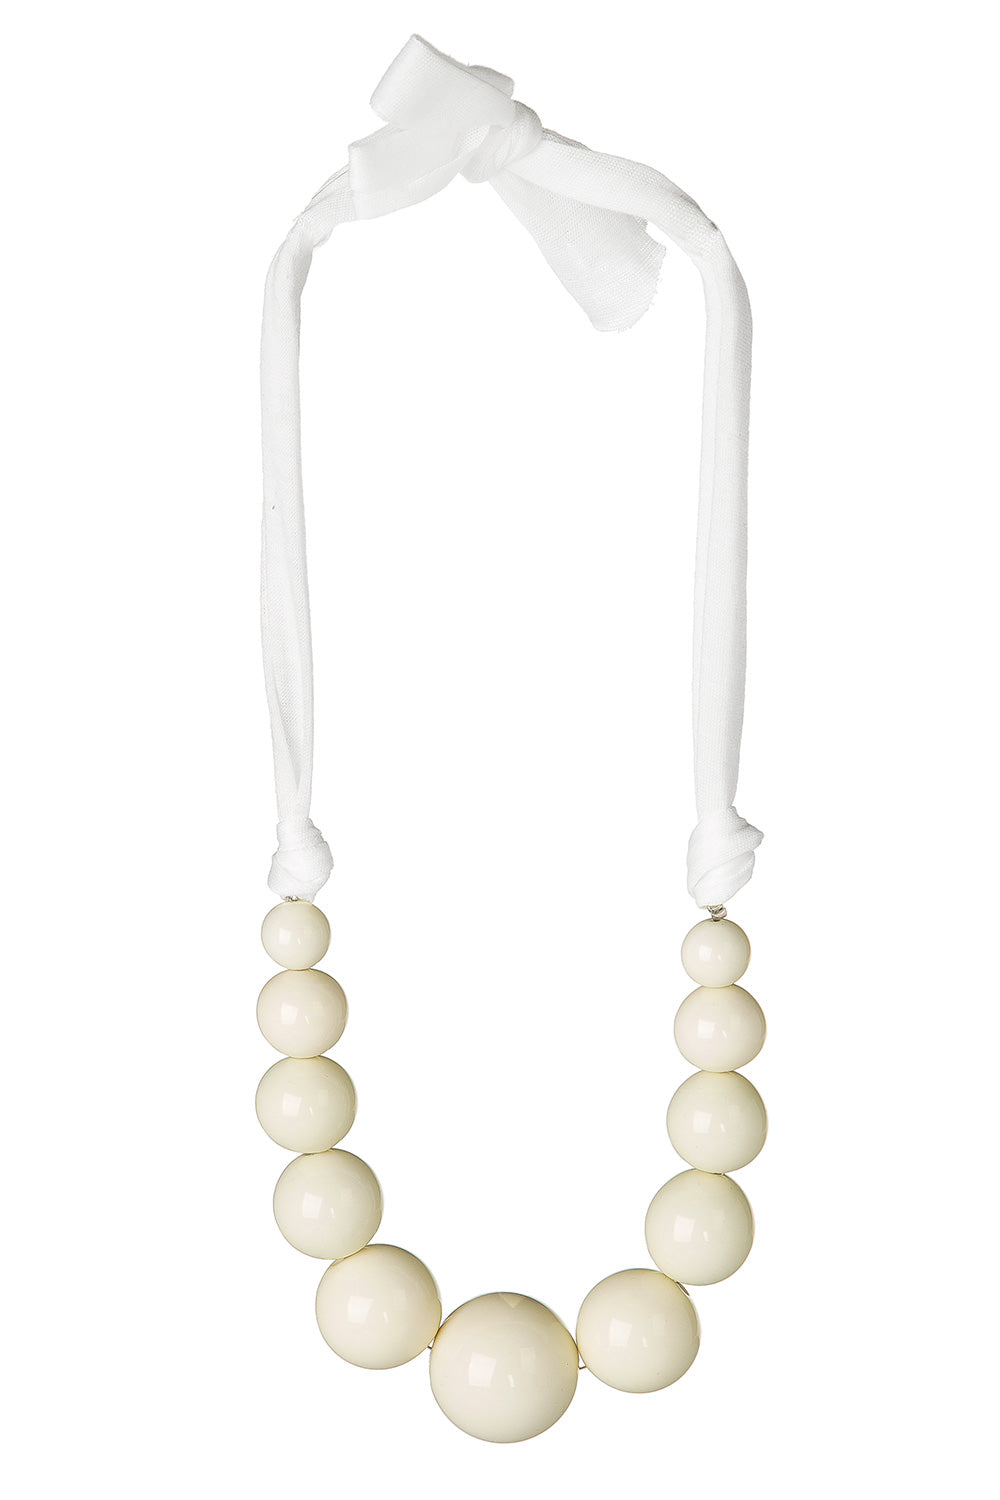 Type 1 Ivory Bubbles Necklace